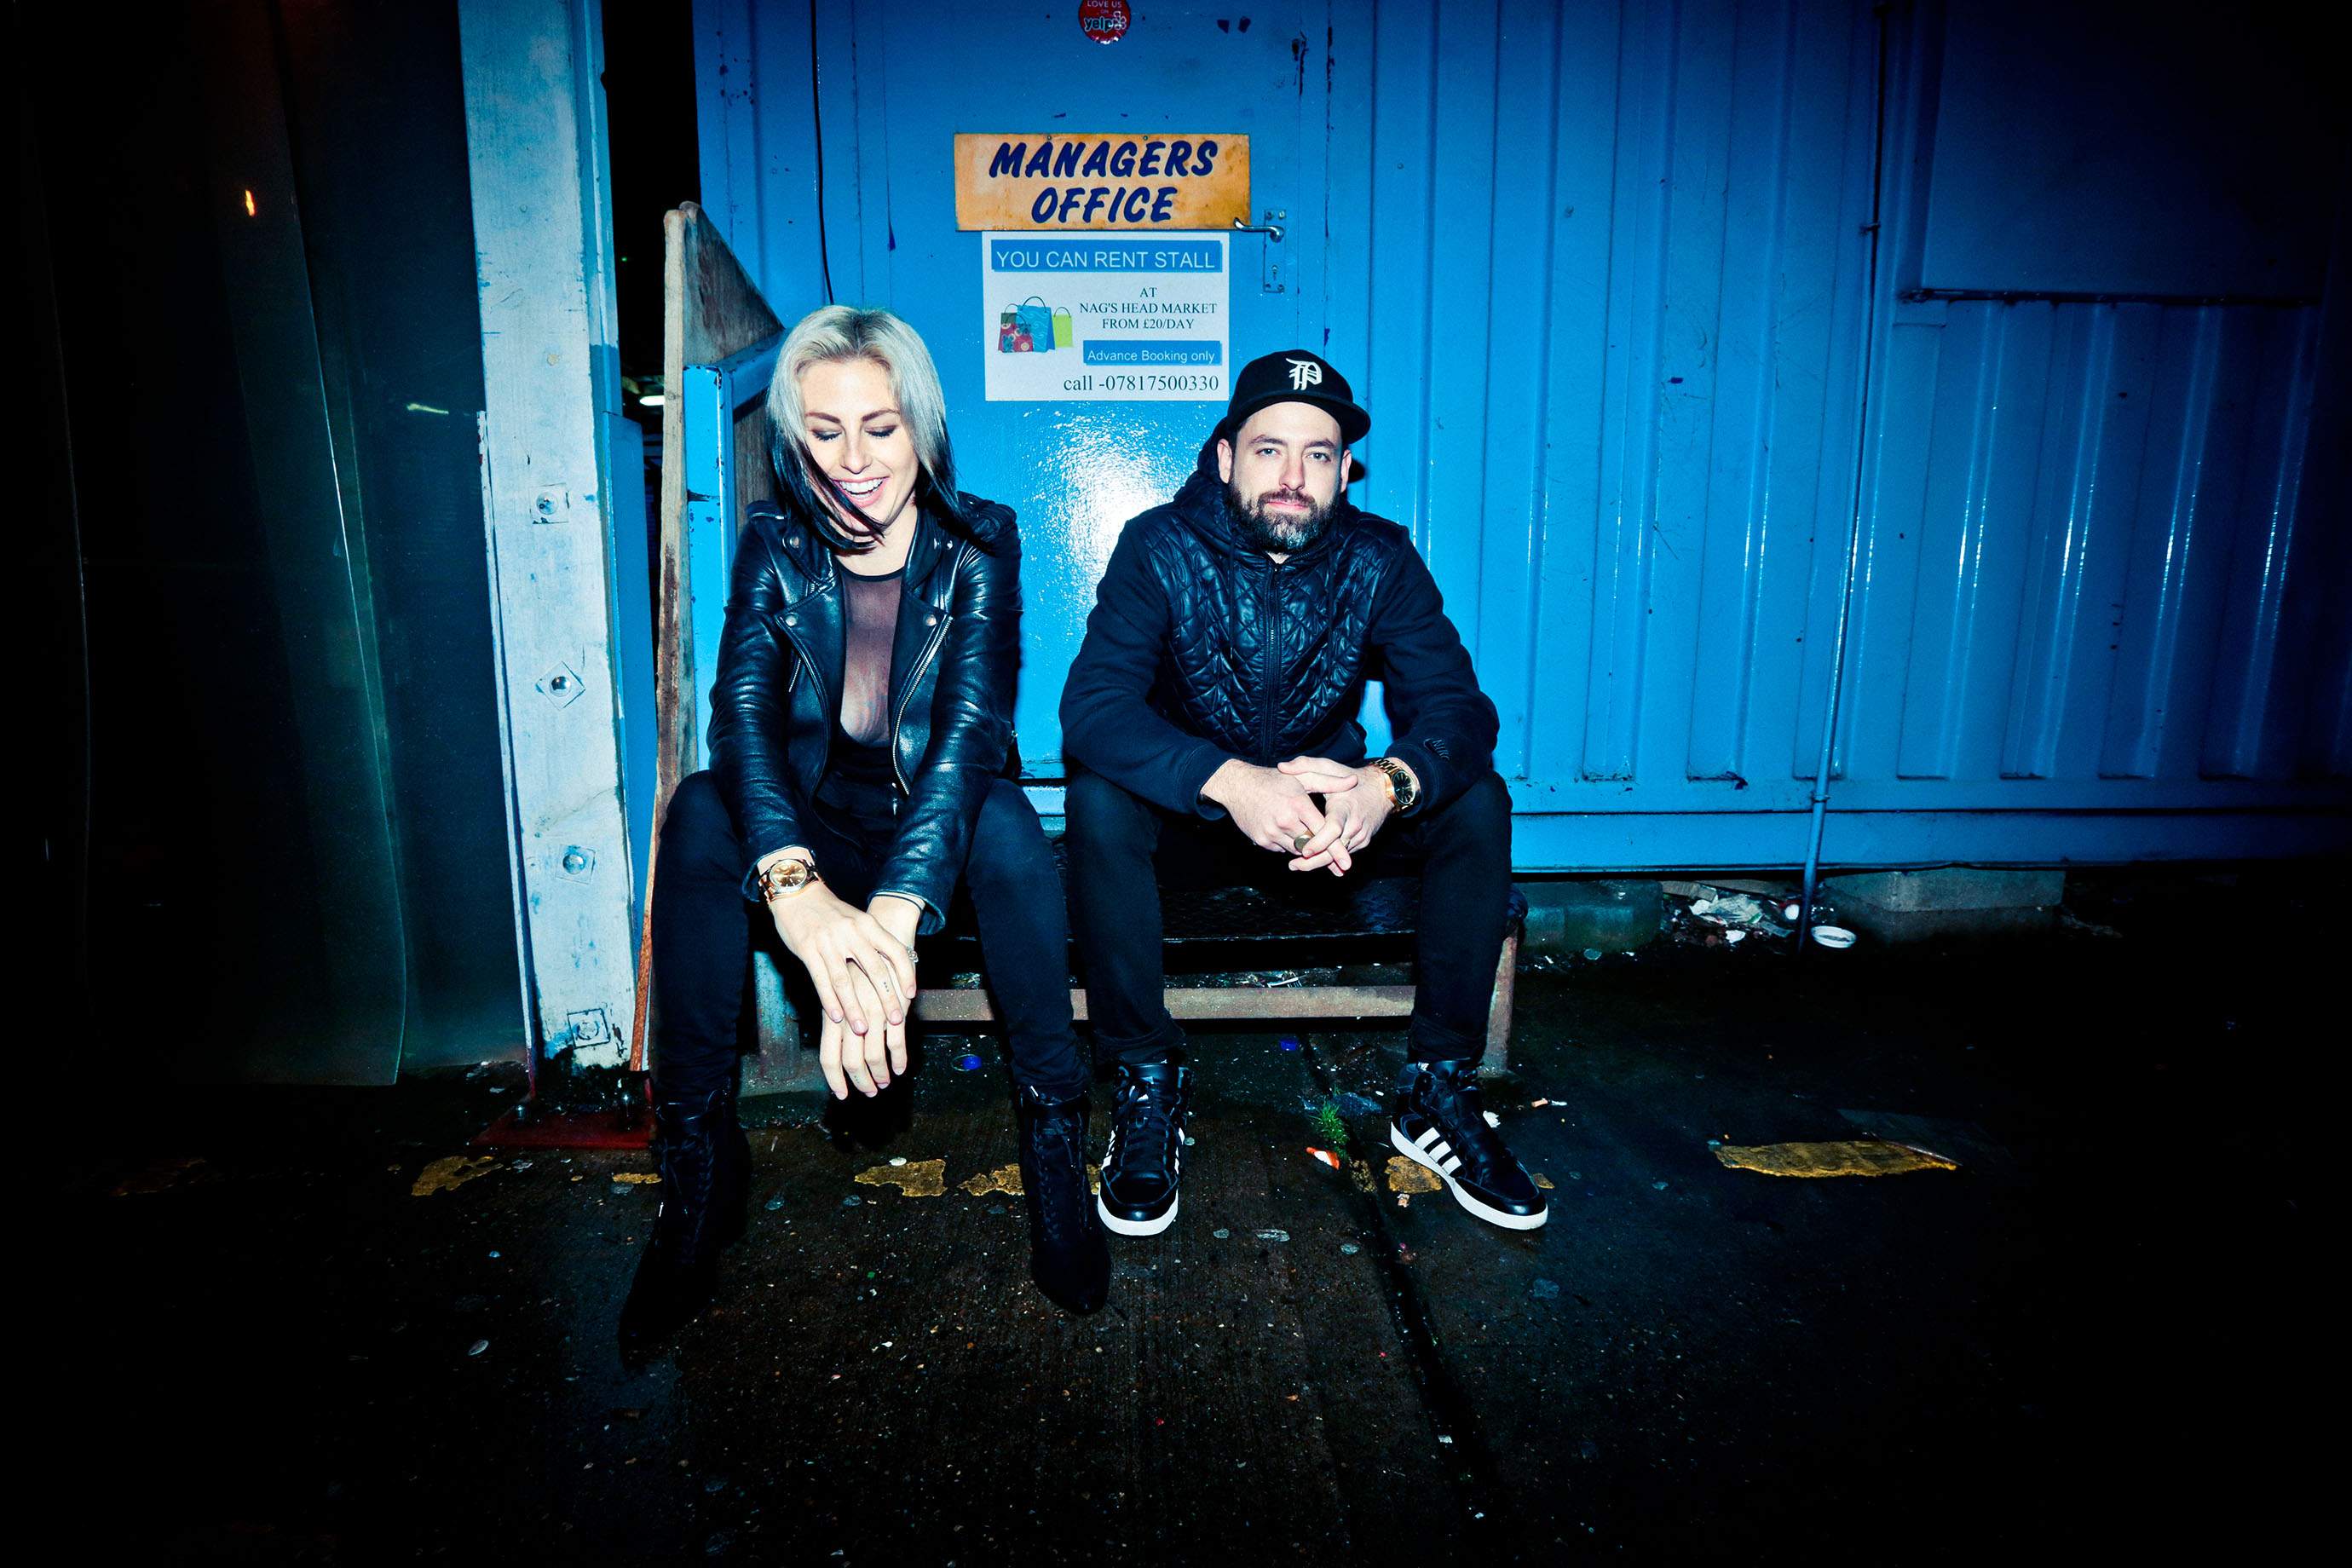 Phantogram returns home, facing fame and loss